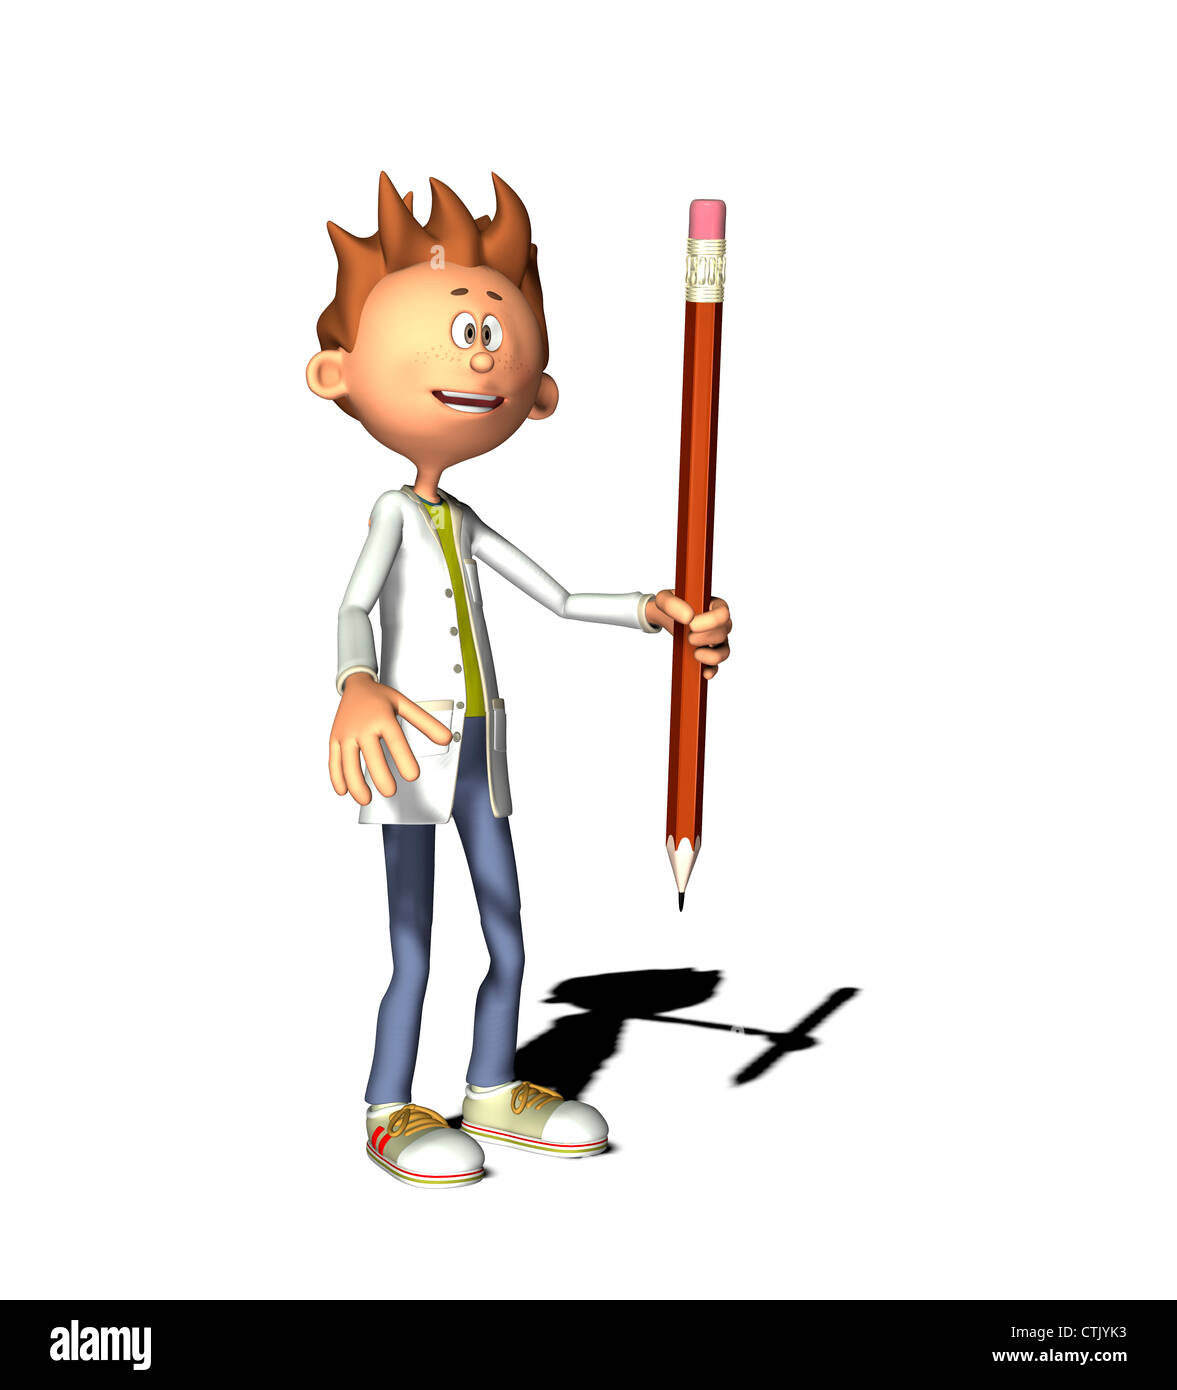 Cartoon-Figur mit Kittel und Stift Stockbild